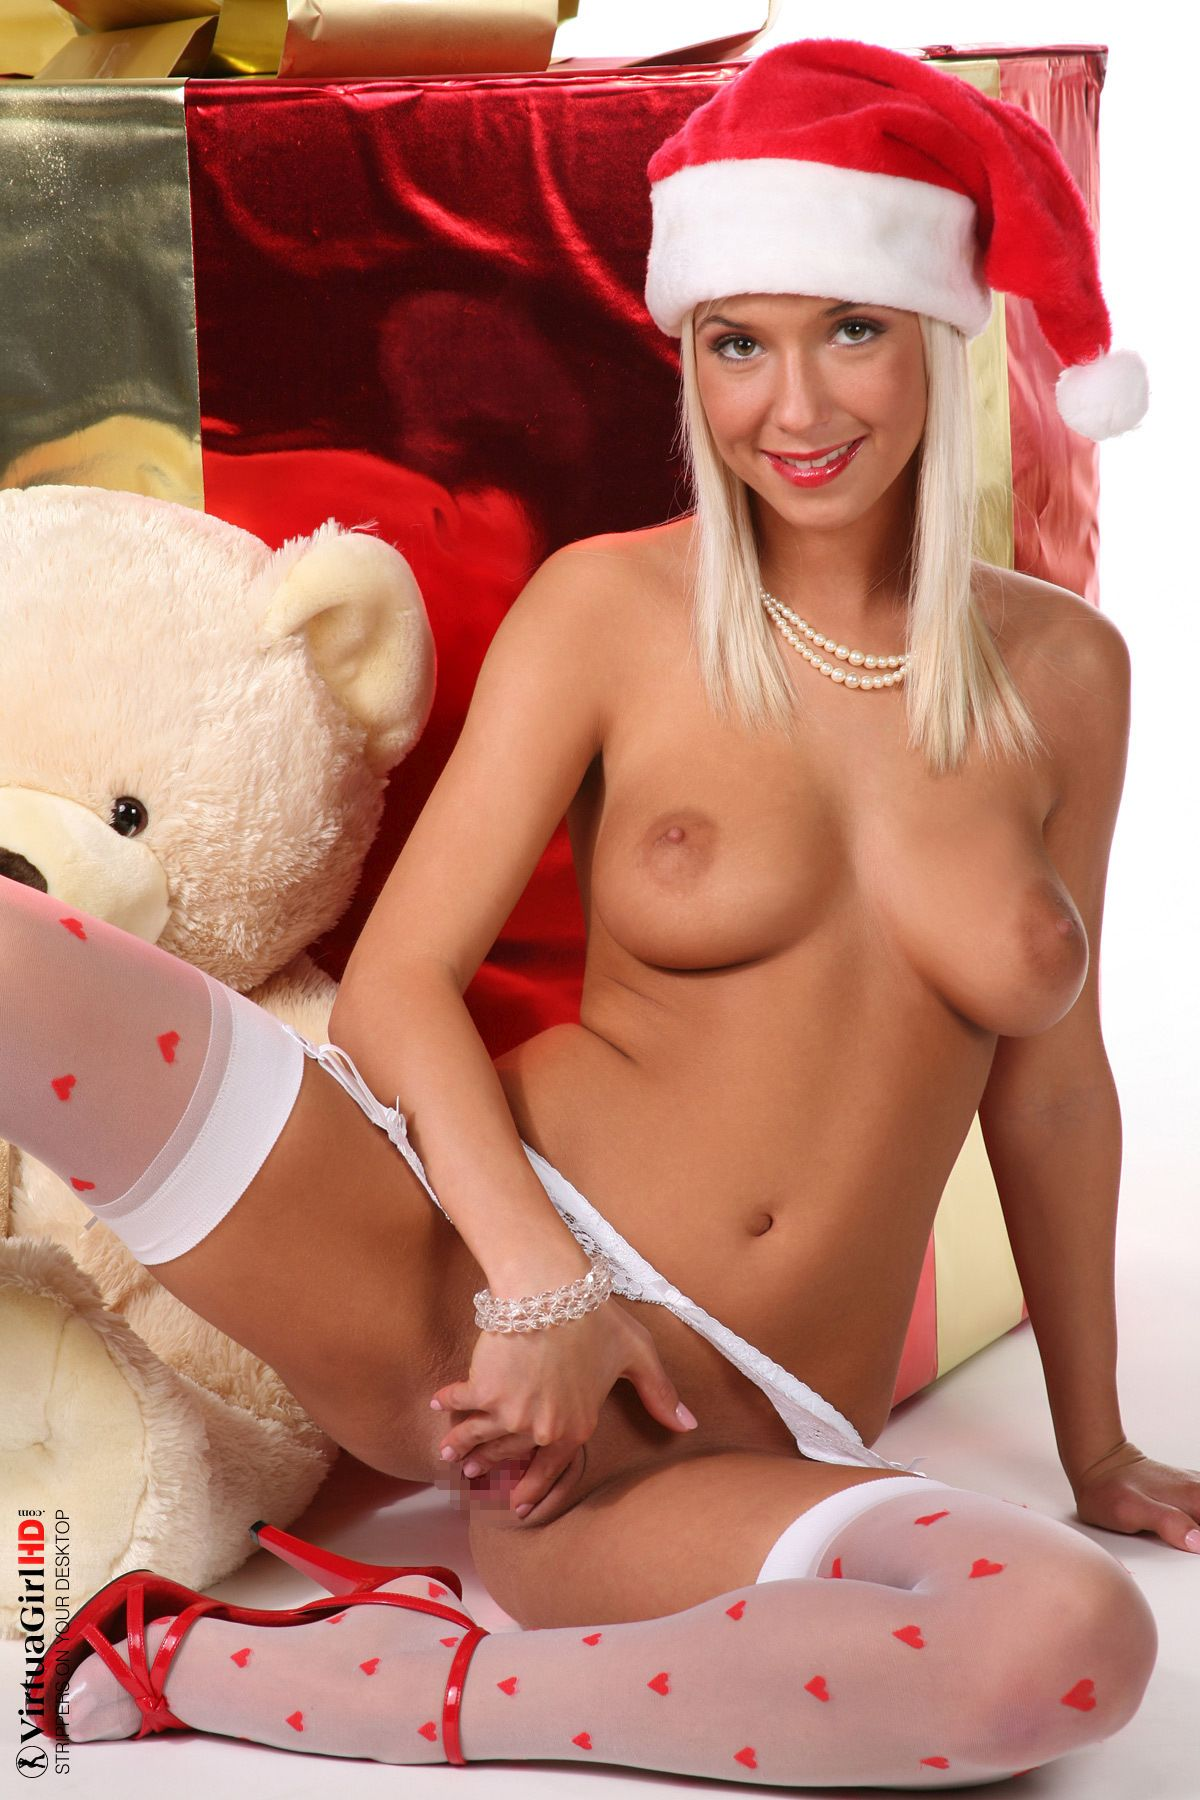 VirtuaGirl - Natali Blond - MERRY CHRISTMAS 02